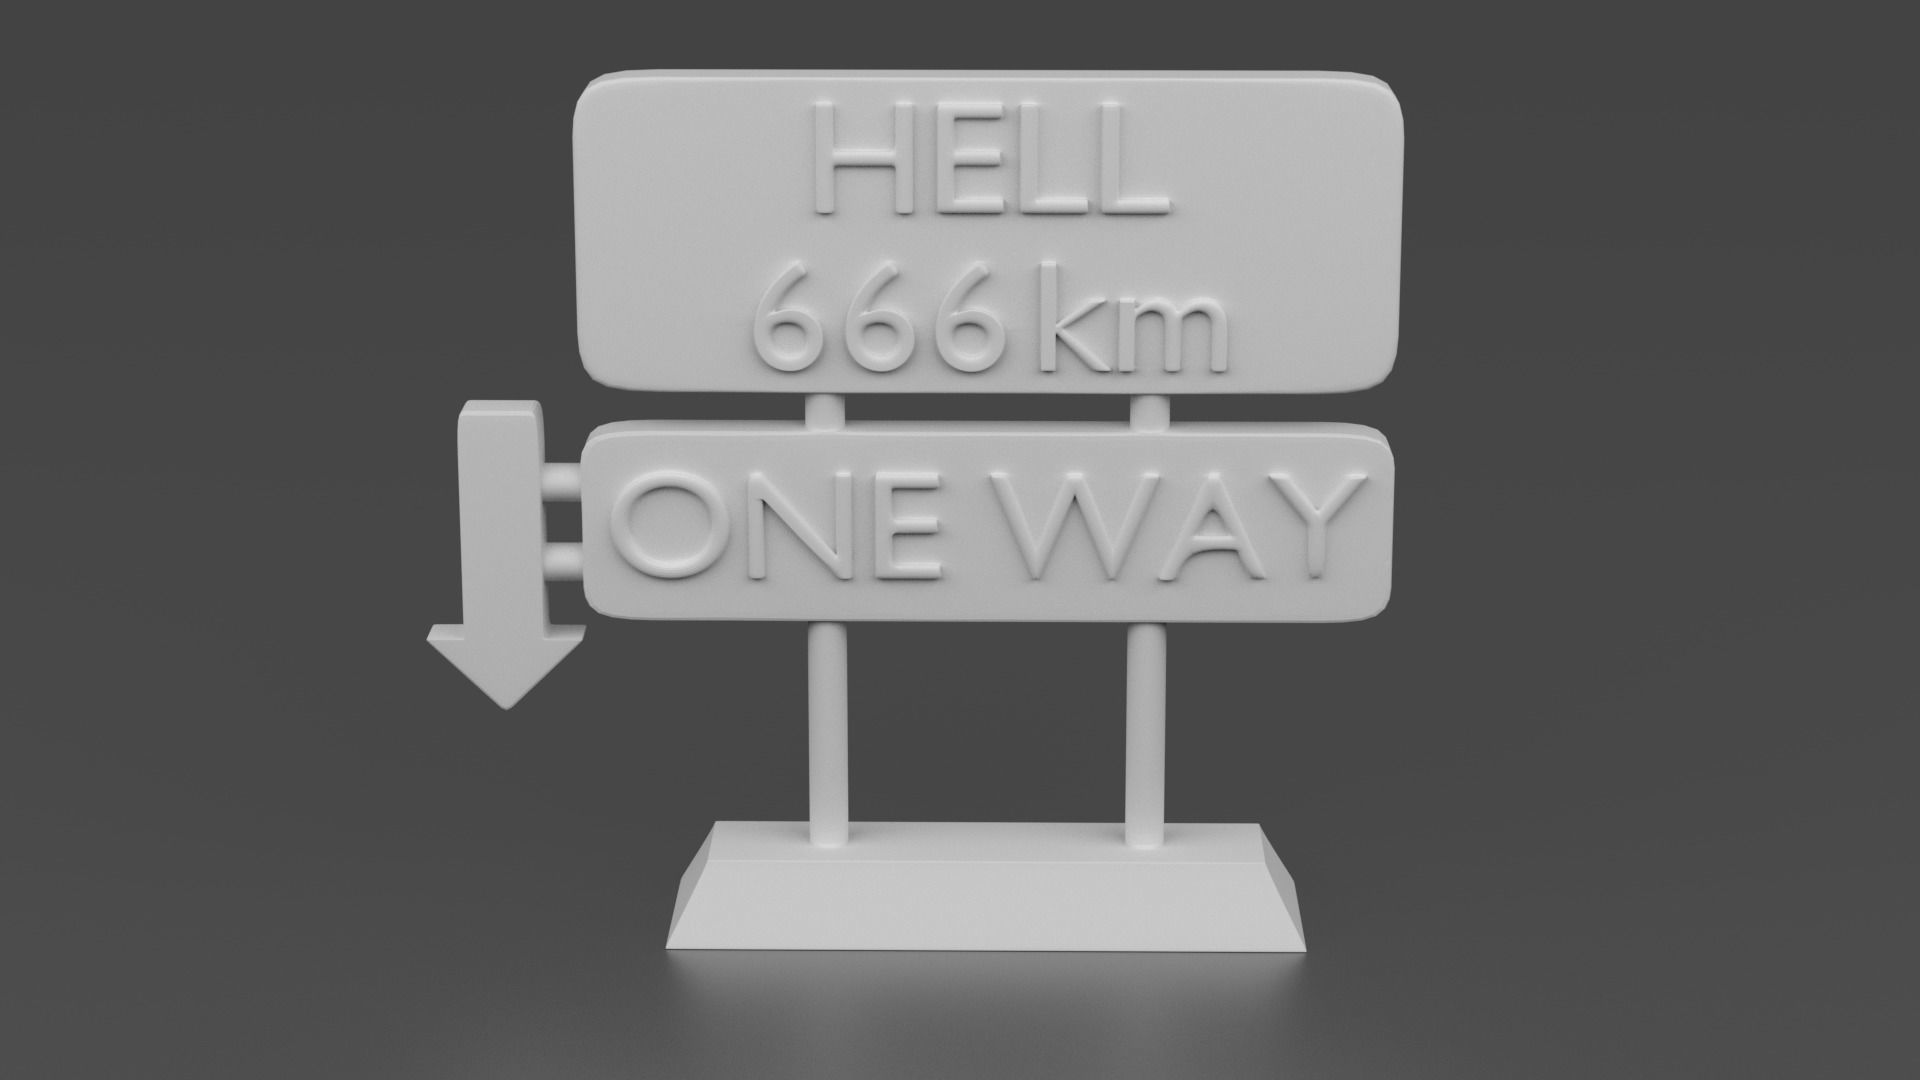 HELL Street sign